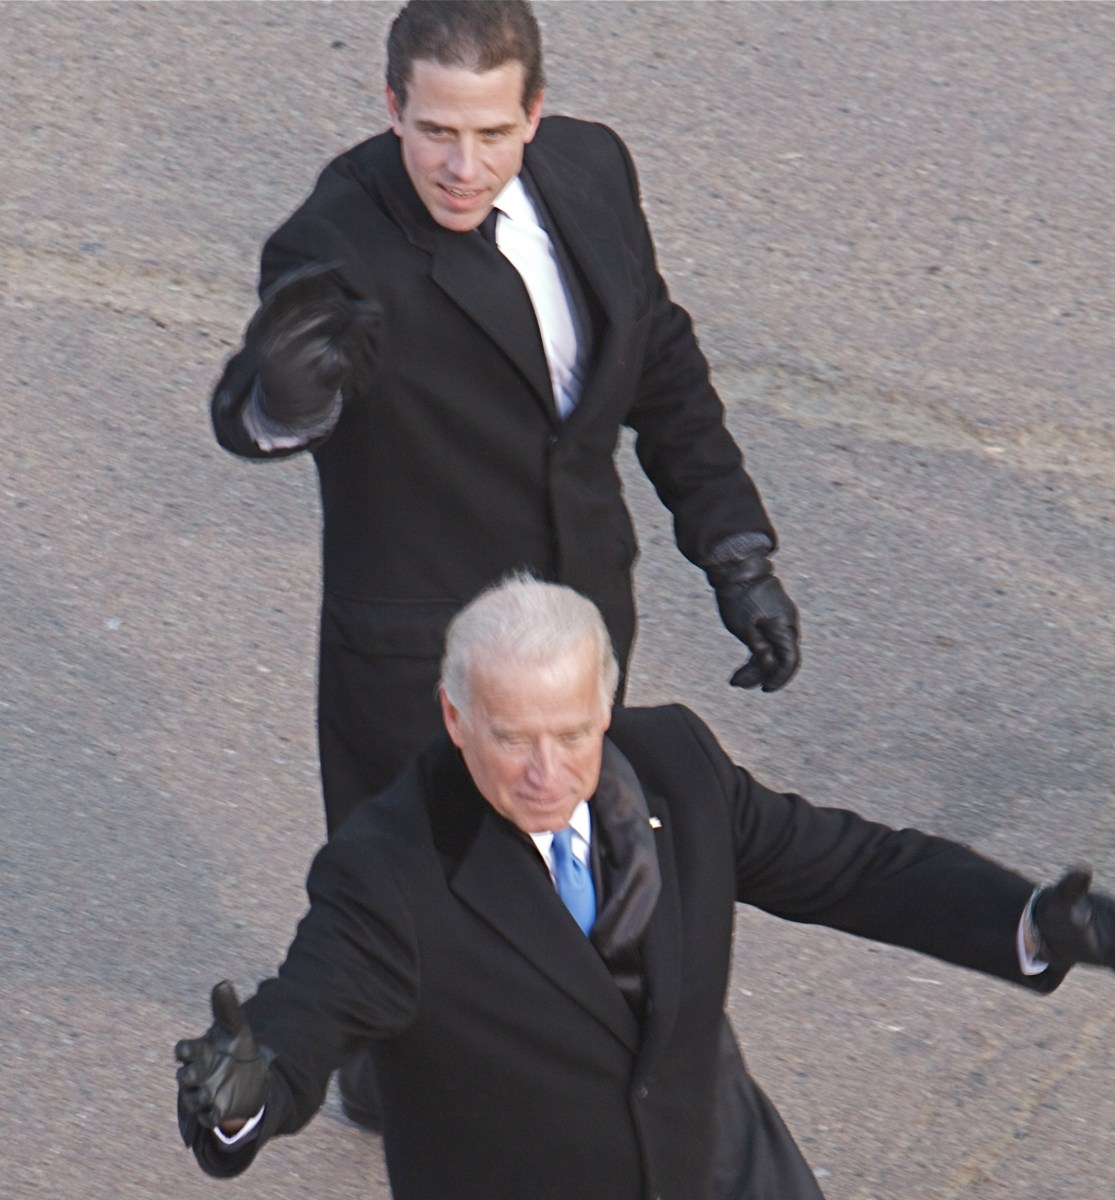 Hunter Biden's Ukraine gig was corrupt, just not in the way Republican conspiracists claim it was